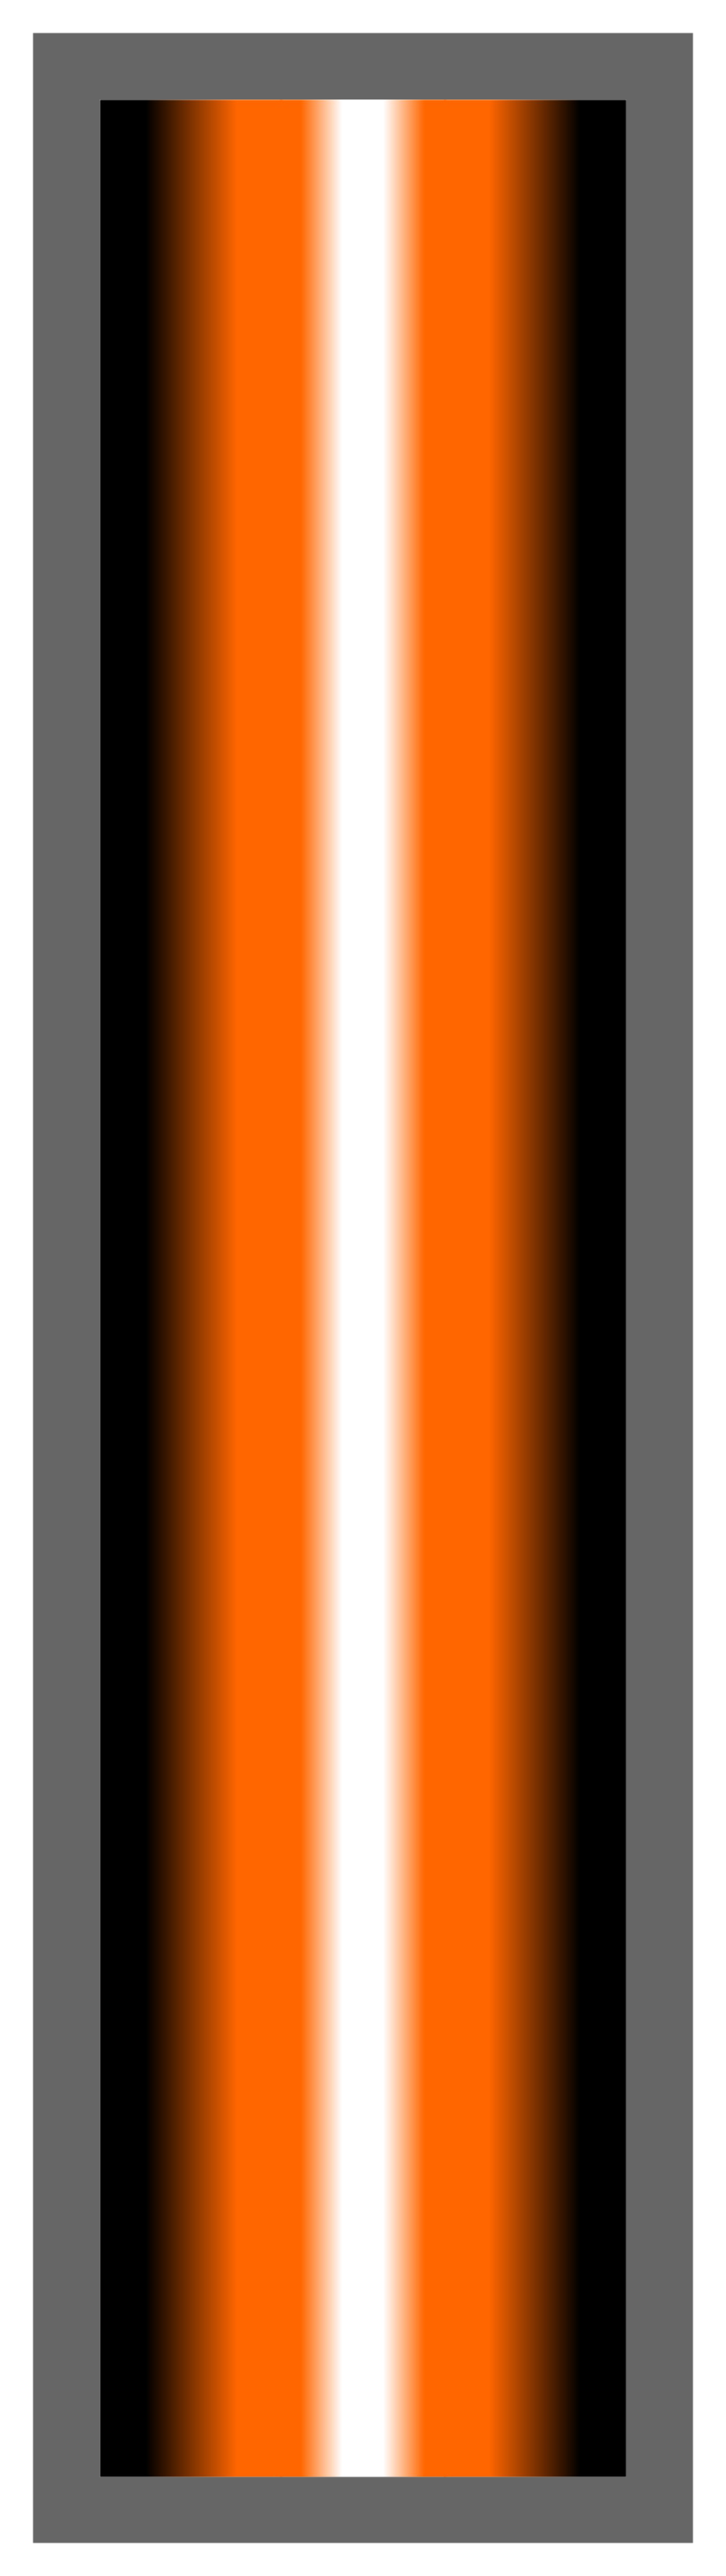 Black-Orange-White Ombre Stripe